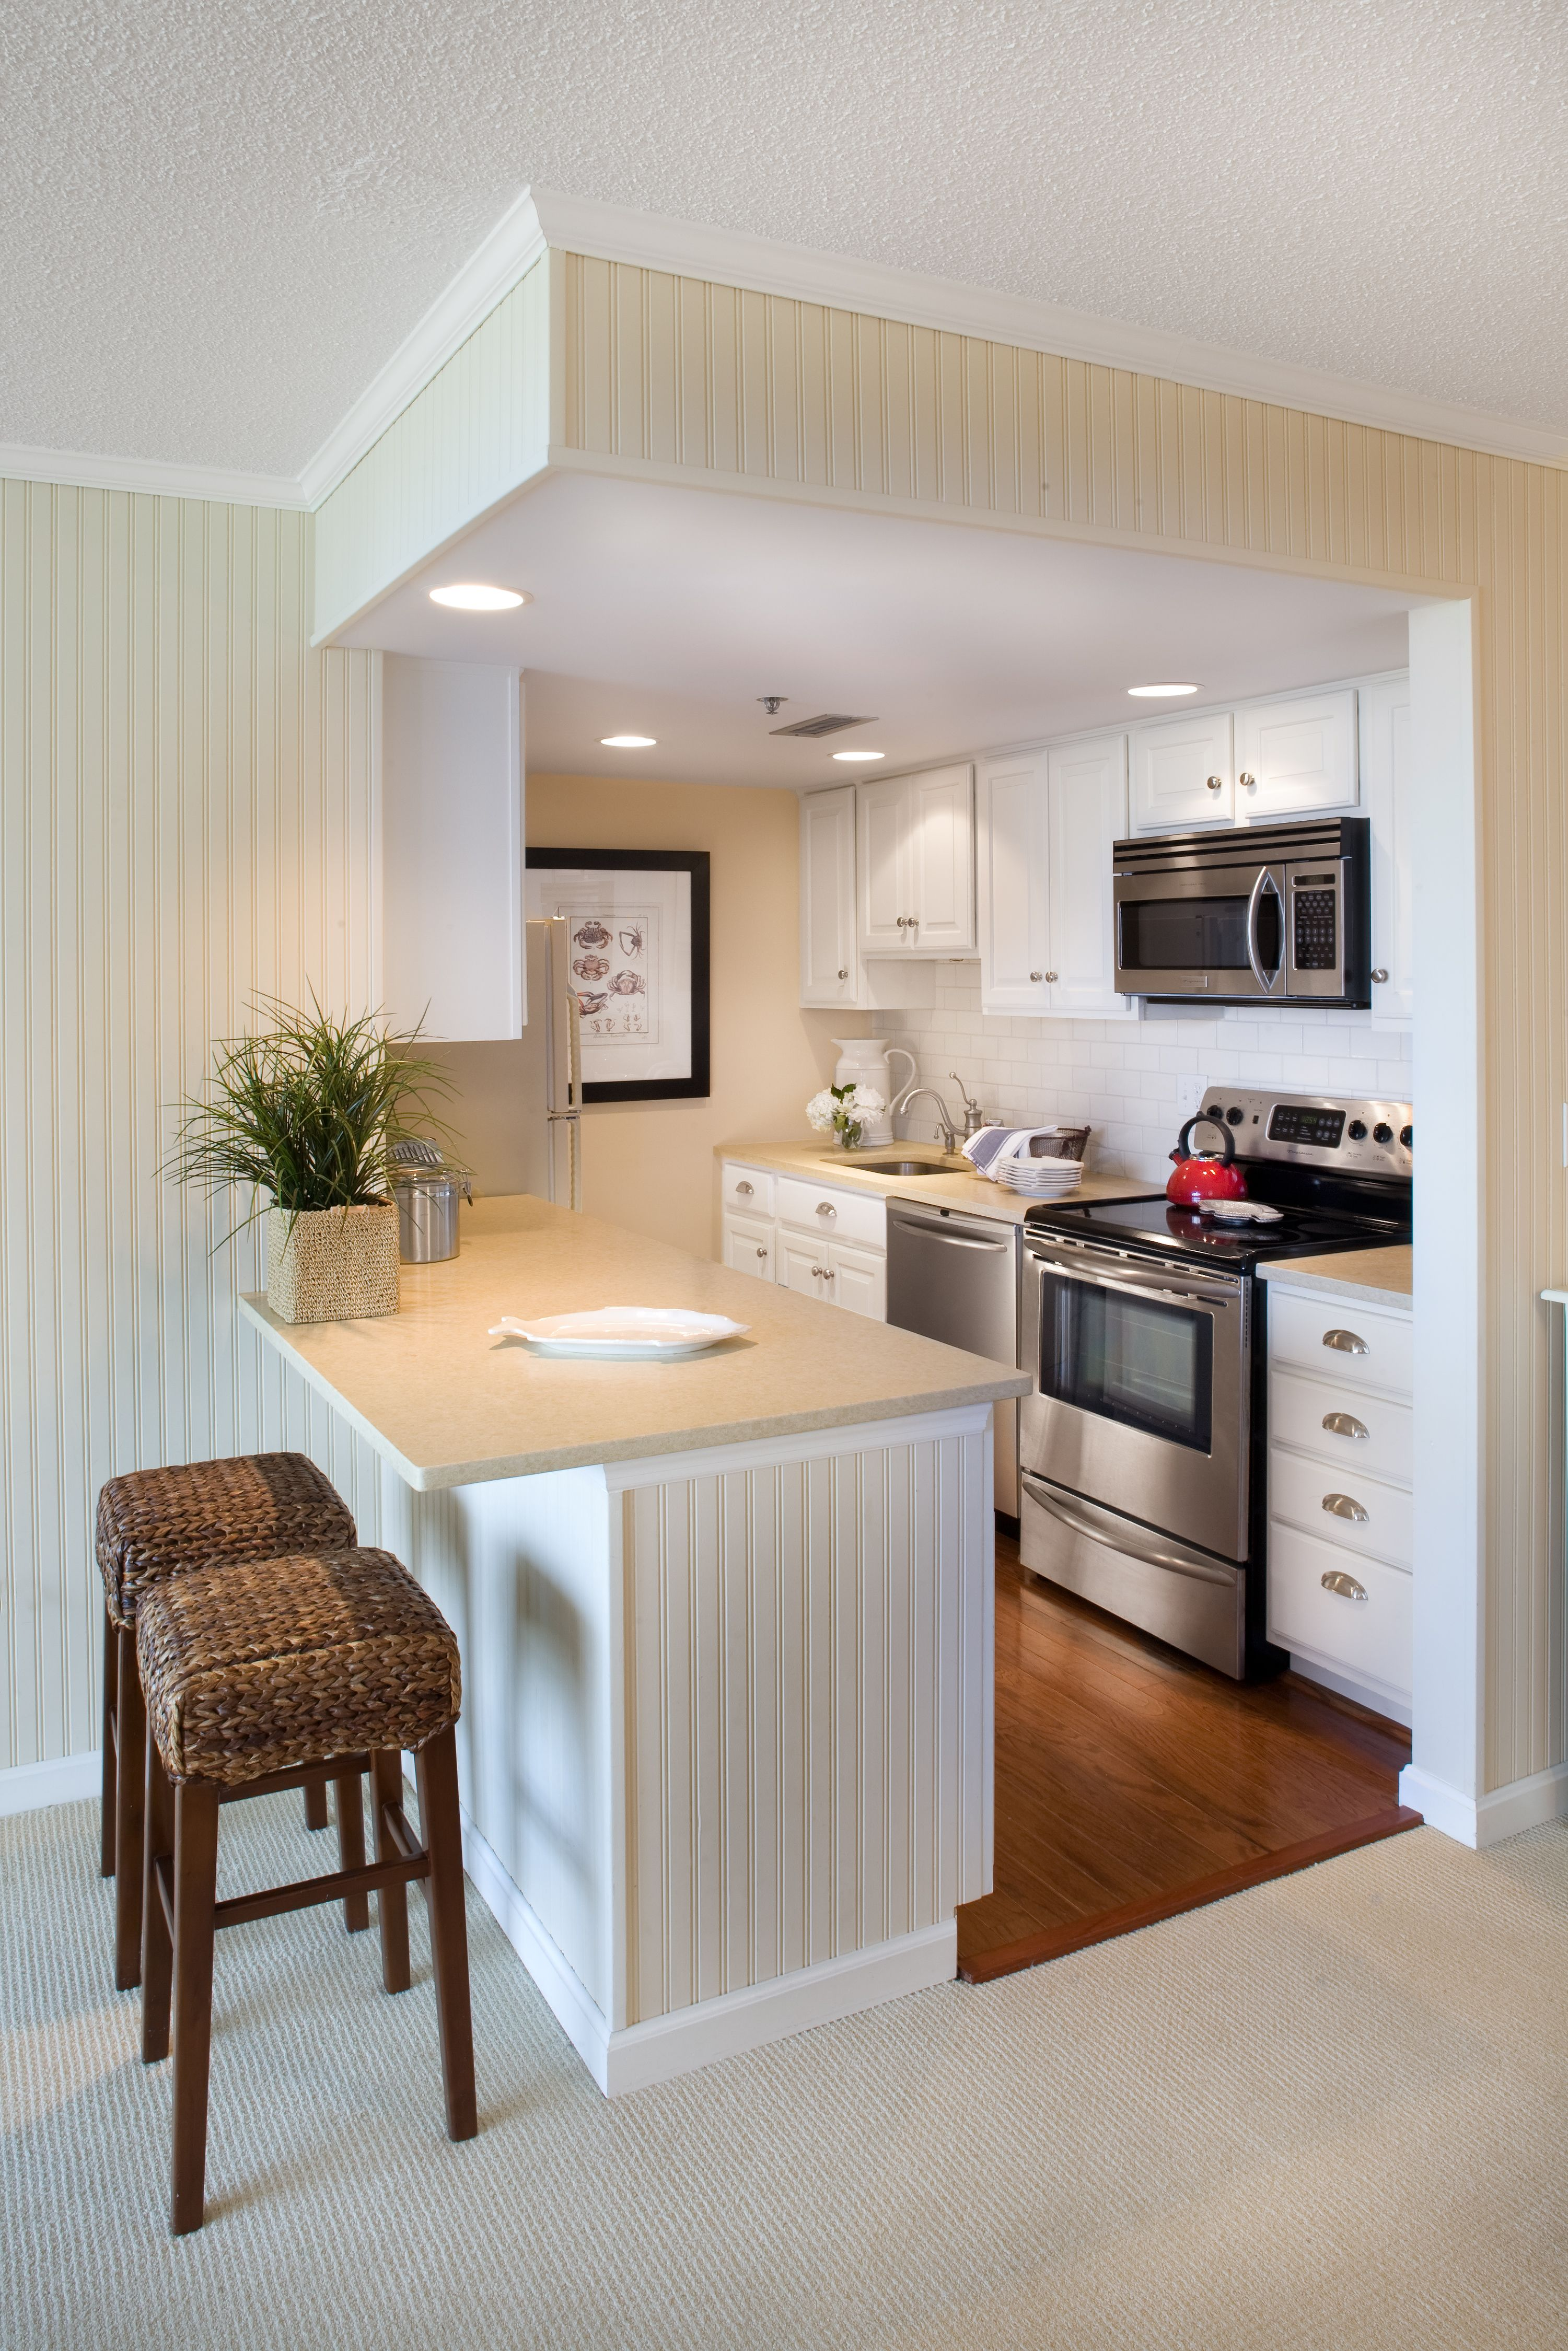 Pinterest Deco De Table How To Plan A Perfect Kitchen Layout Kitchen In 2019 Small